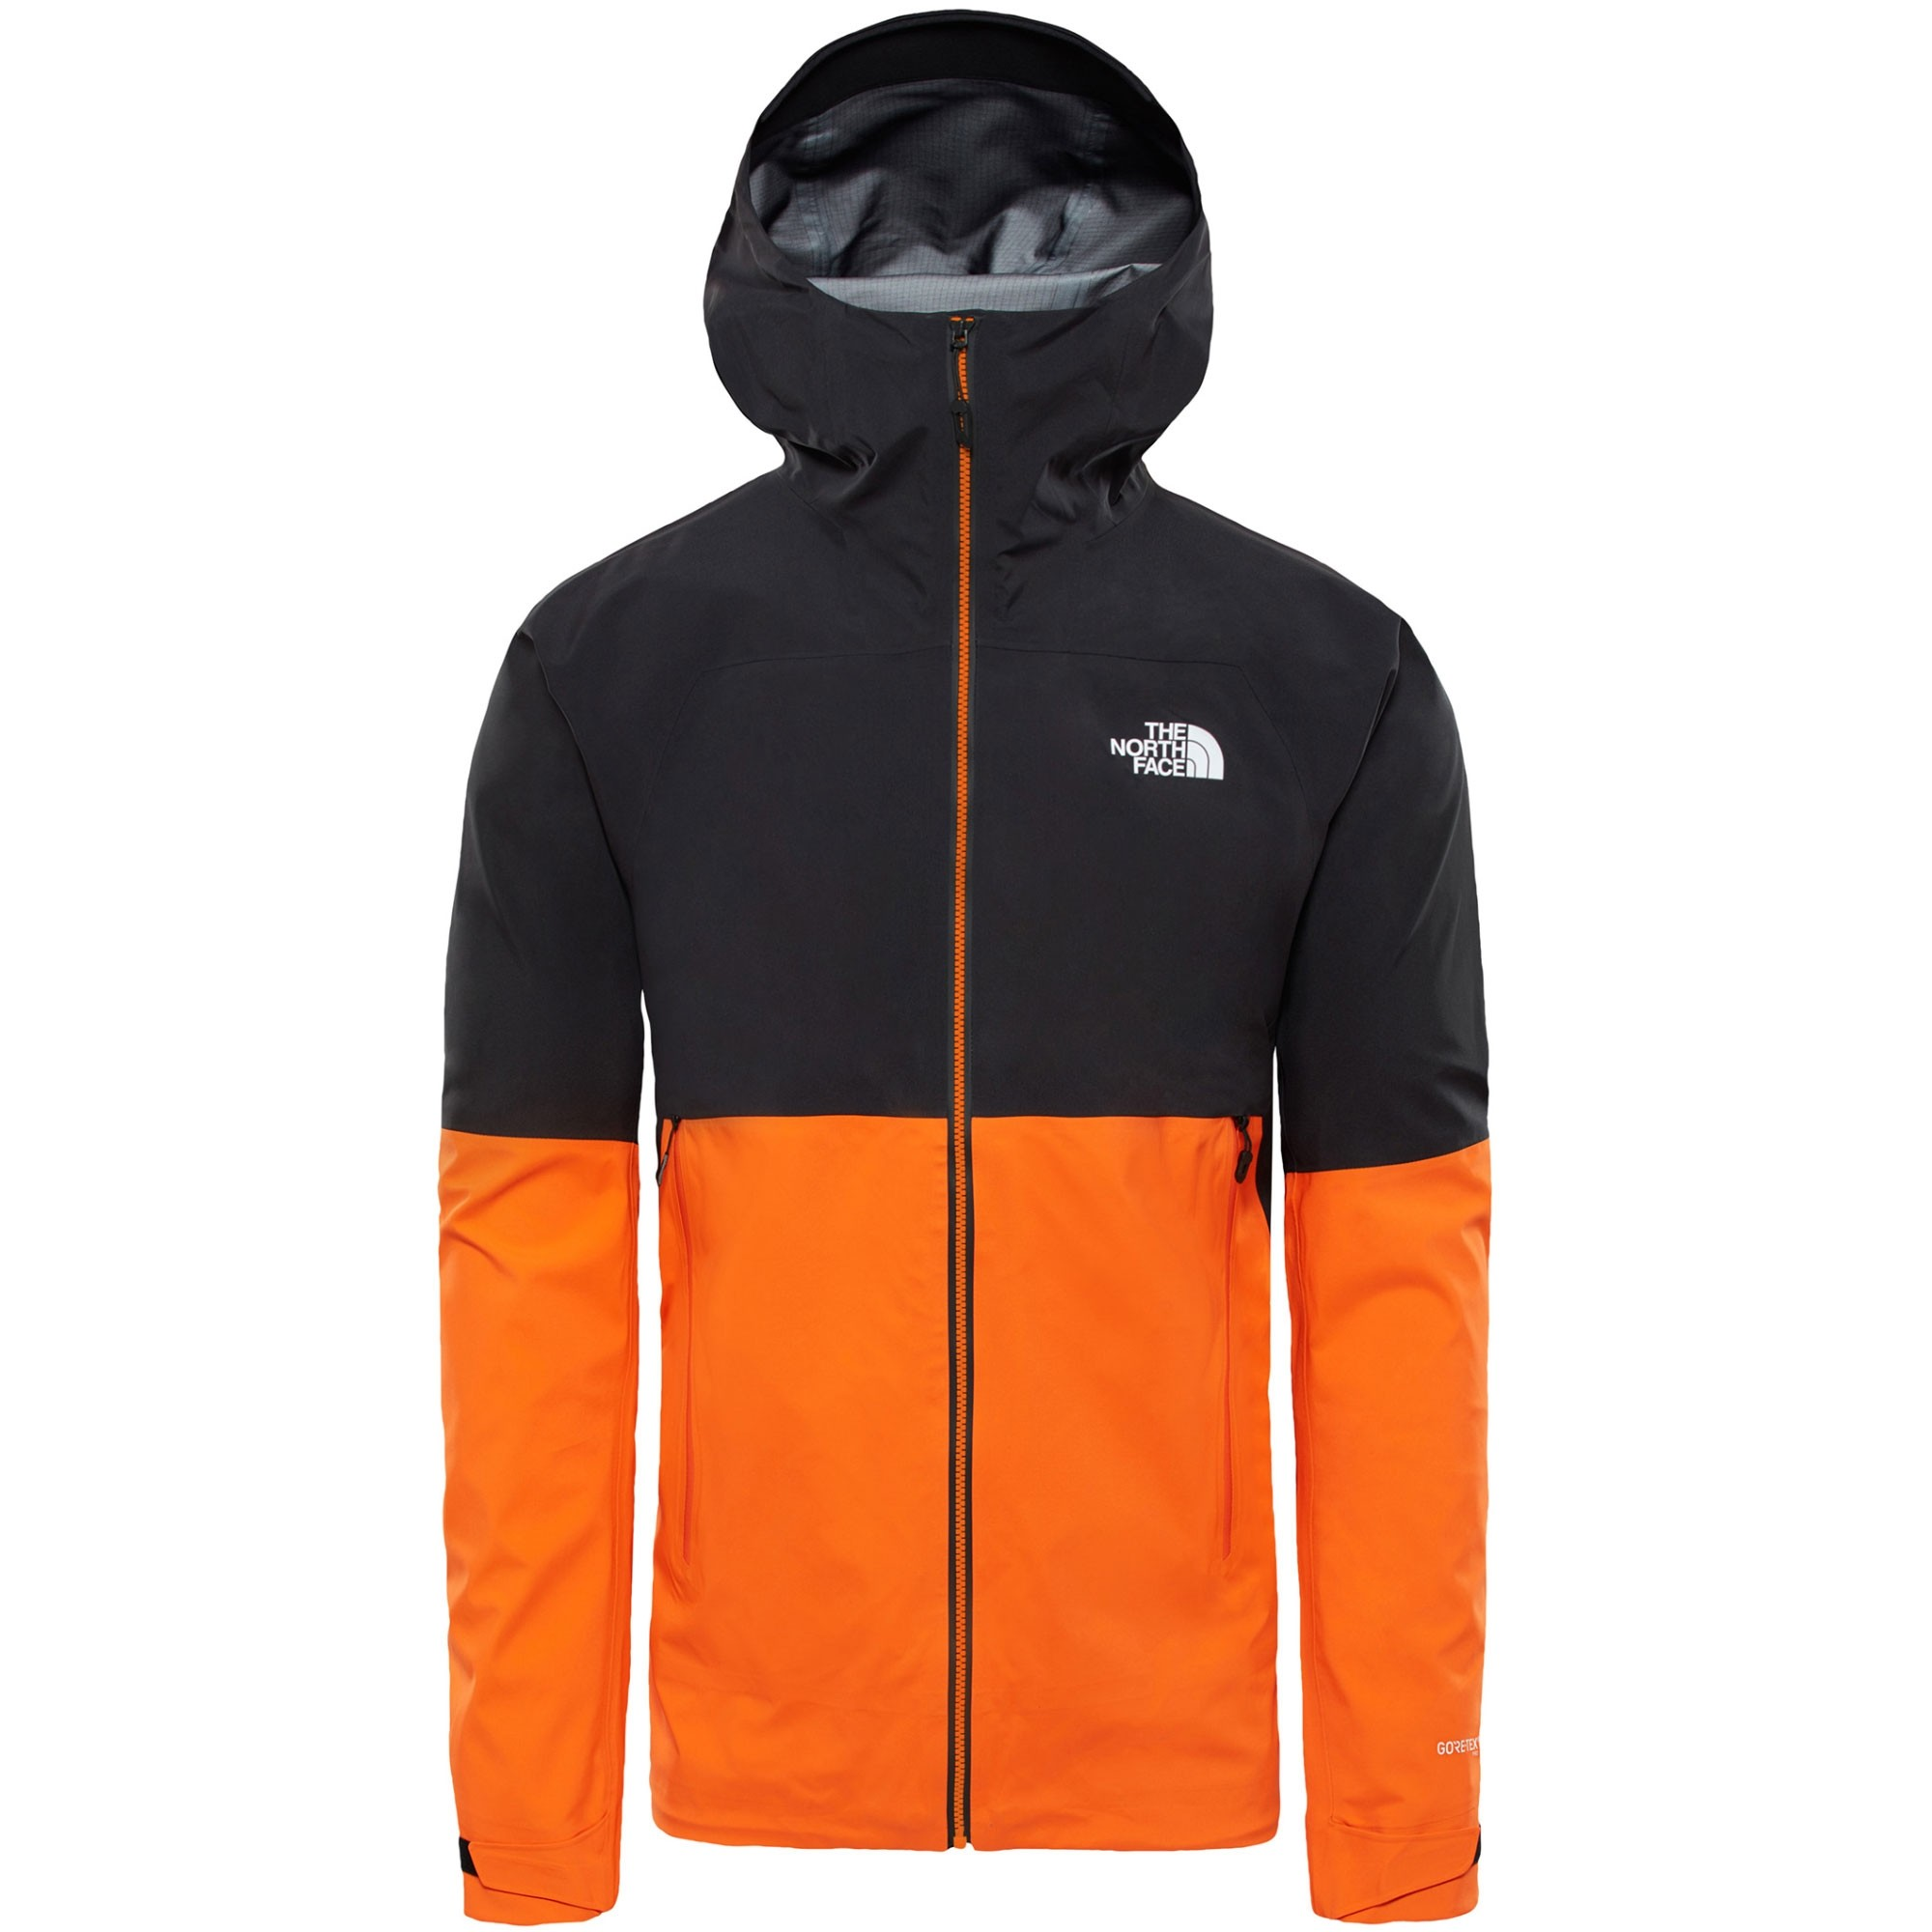 The North Face Impendor Shell Jacket - Persian Orange/TNF Black